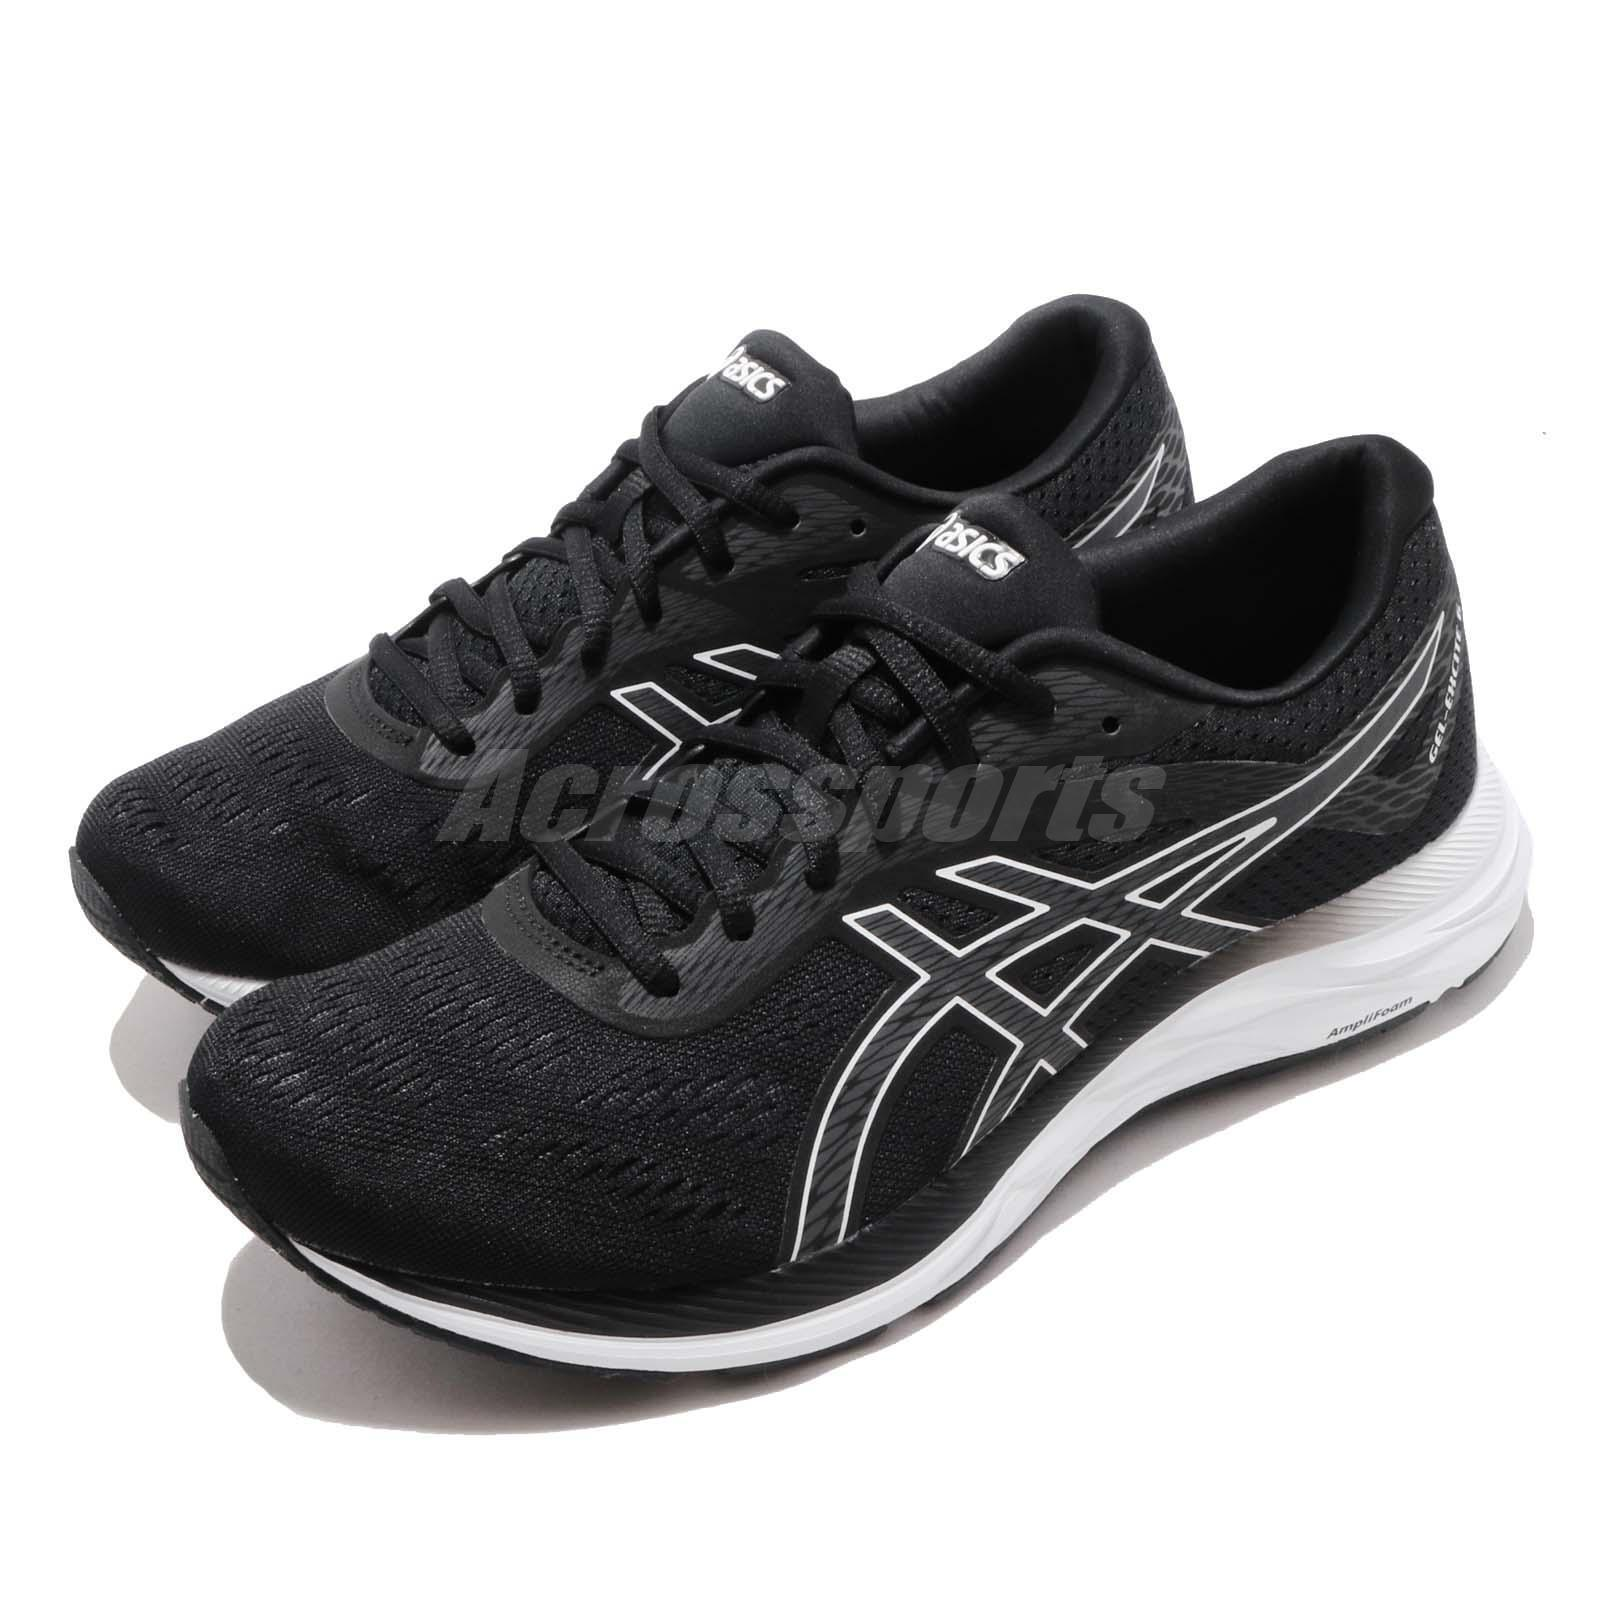 Asics Gel- Excite 6 negro blanco gris Men Running zapatos zapatillas 1011A165-001